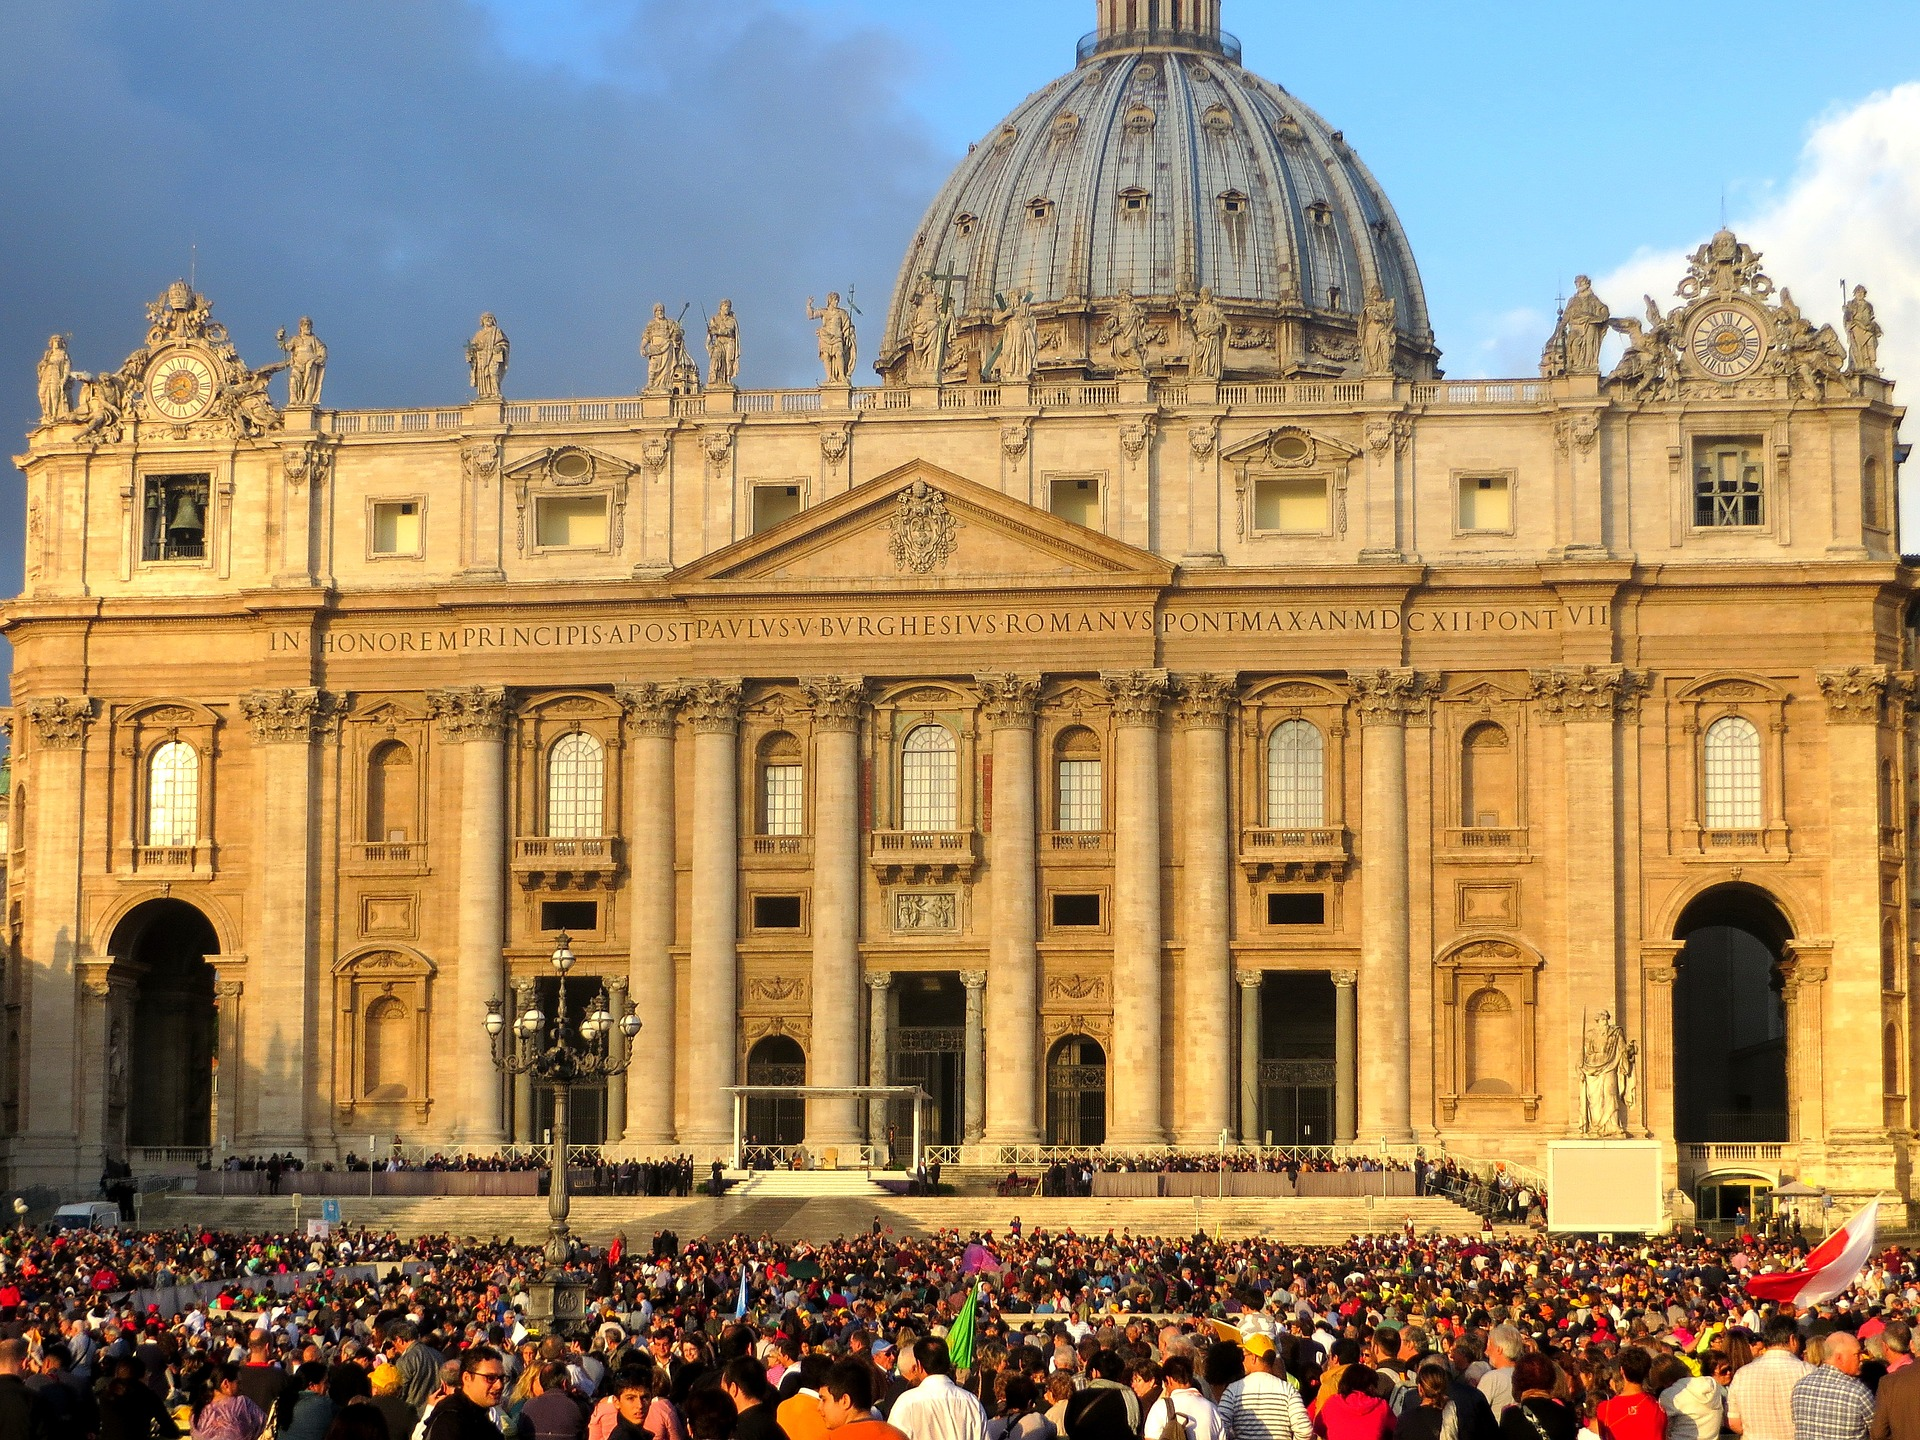 photos of st. peters basilica in rome at sunset